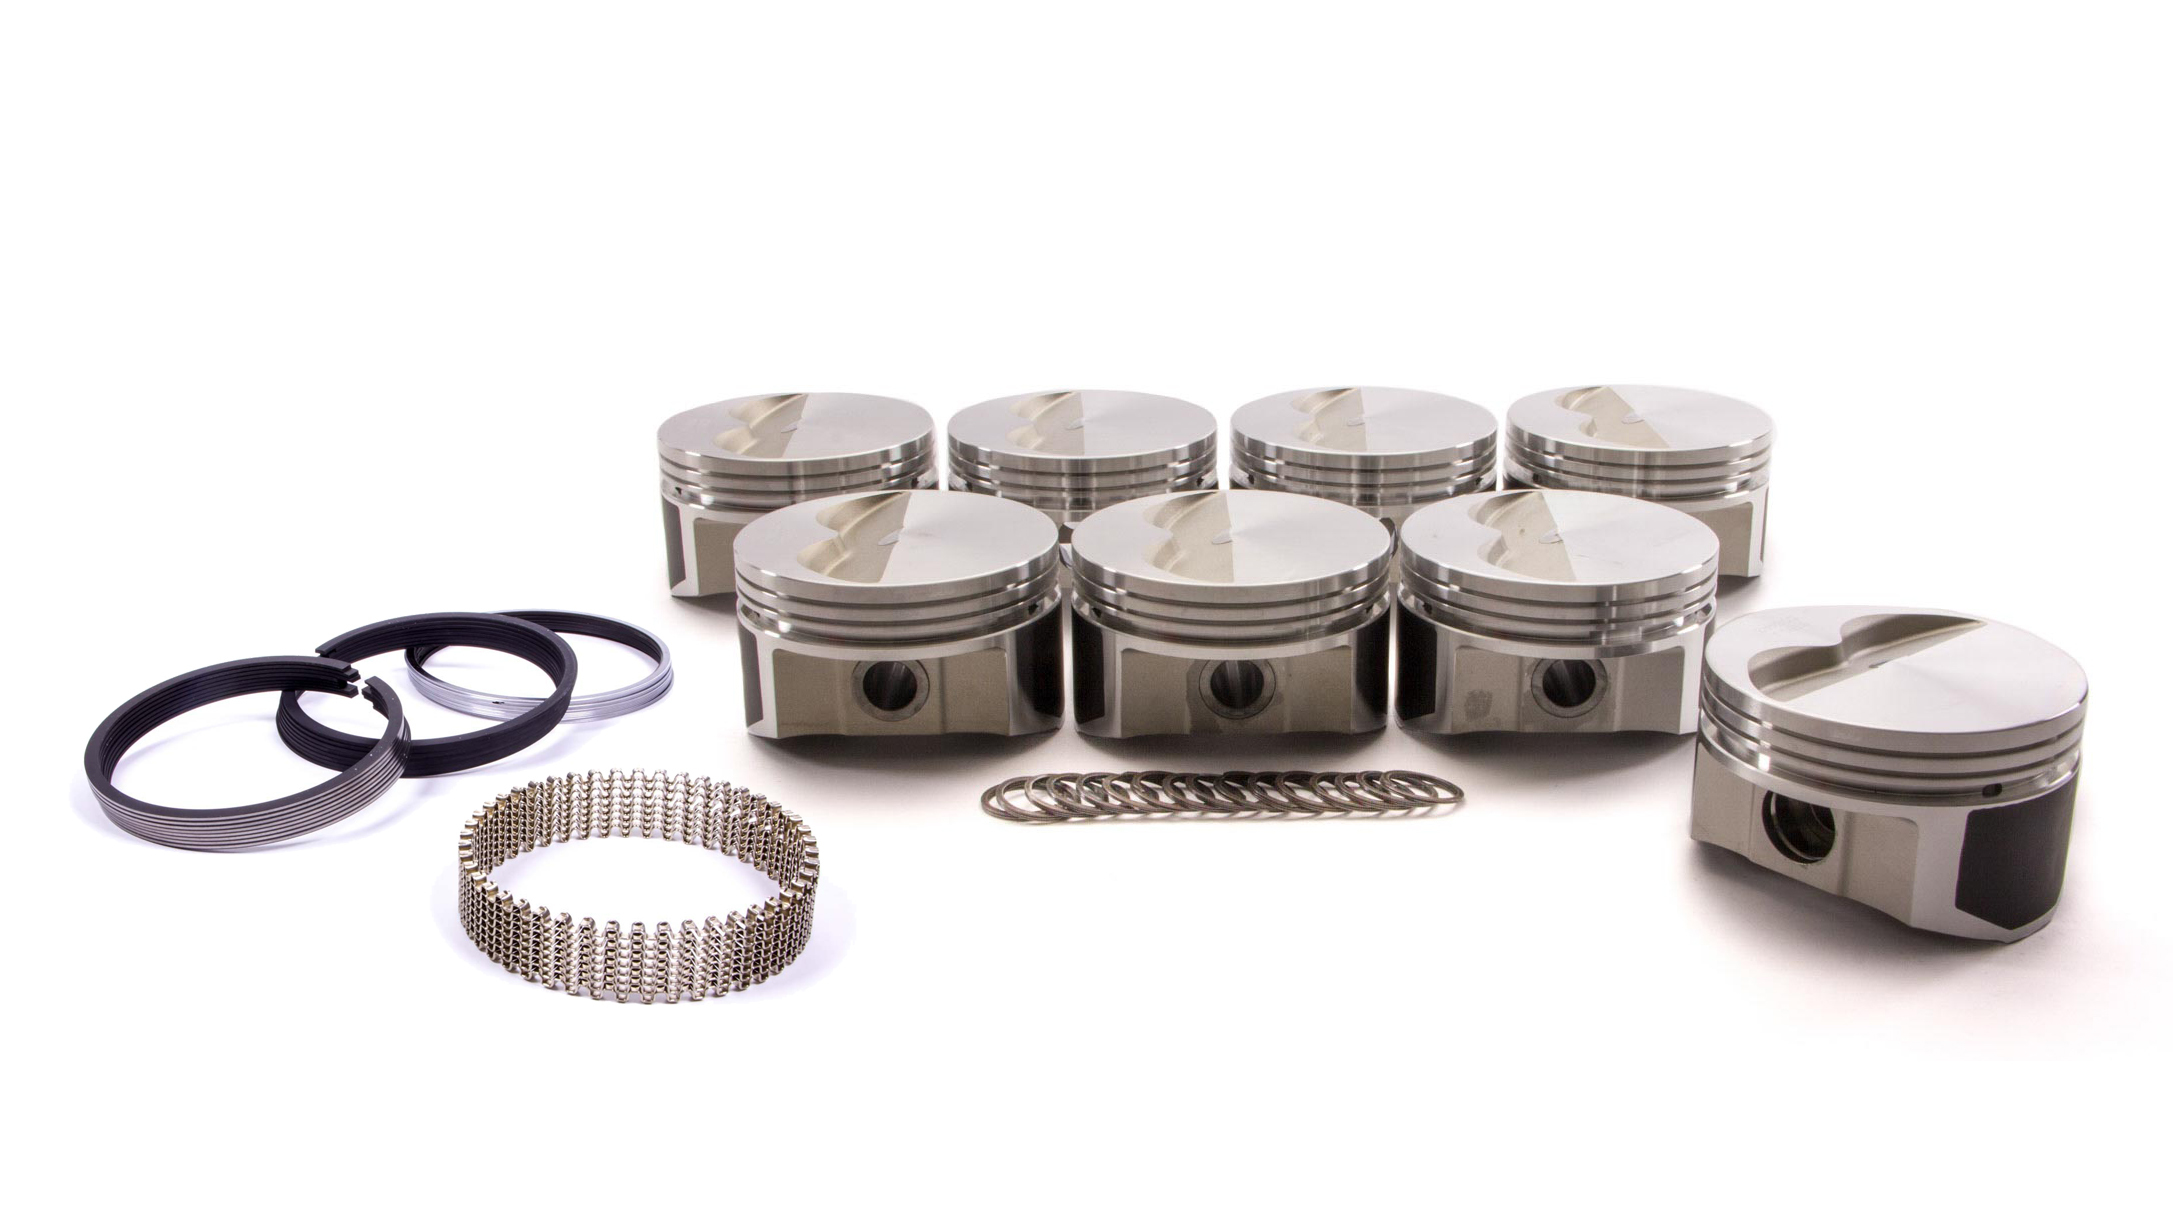 Wiseco Pro-Tru PTS503A6 Piston and Ring, 23 Degree Flat Top, Forged, 4.060 in Bore, 1/16 x 1/16 x 3/16 in Ring Grooves, Minus 5.0 cc, Small Block Chevy, Kit